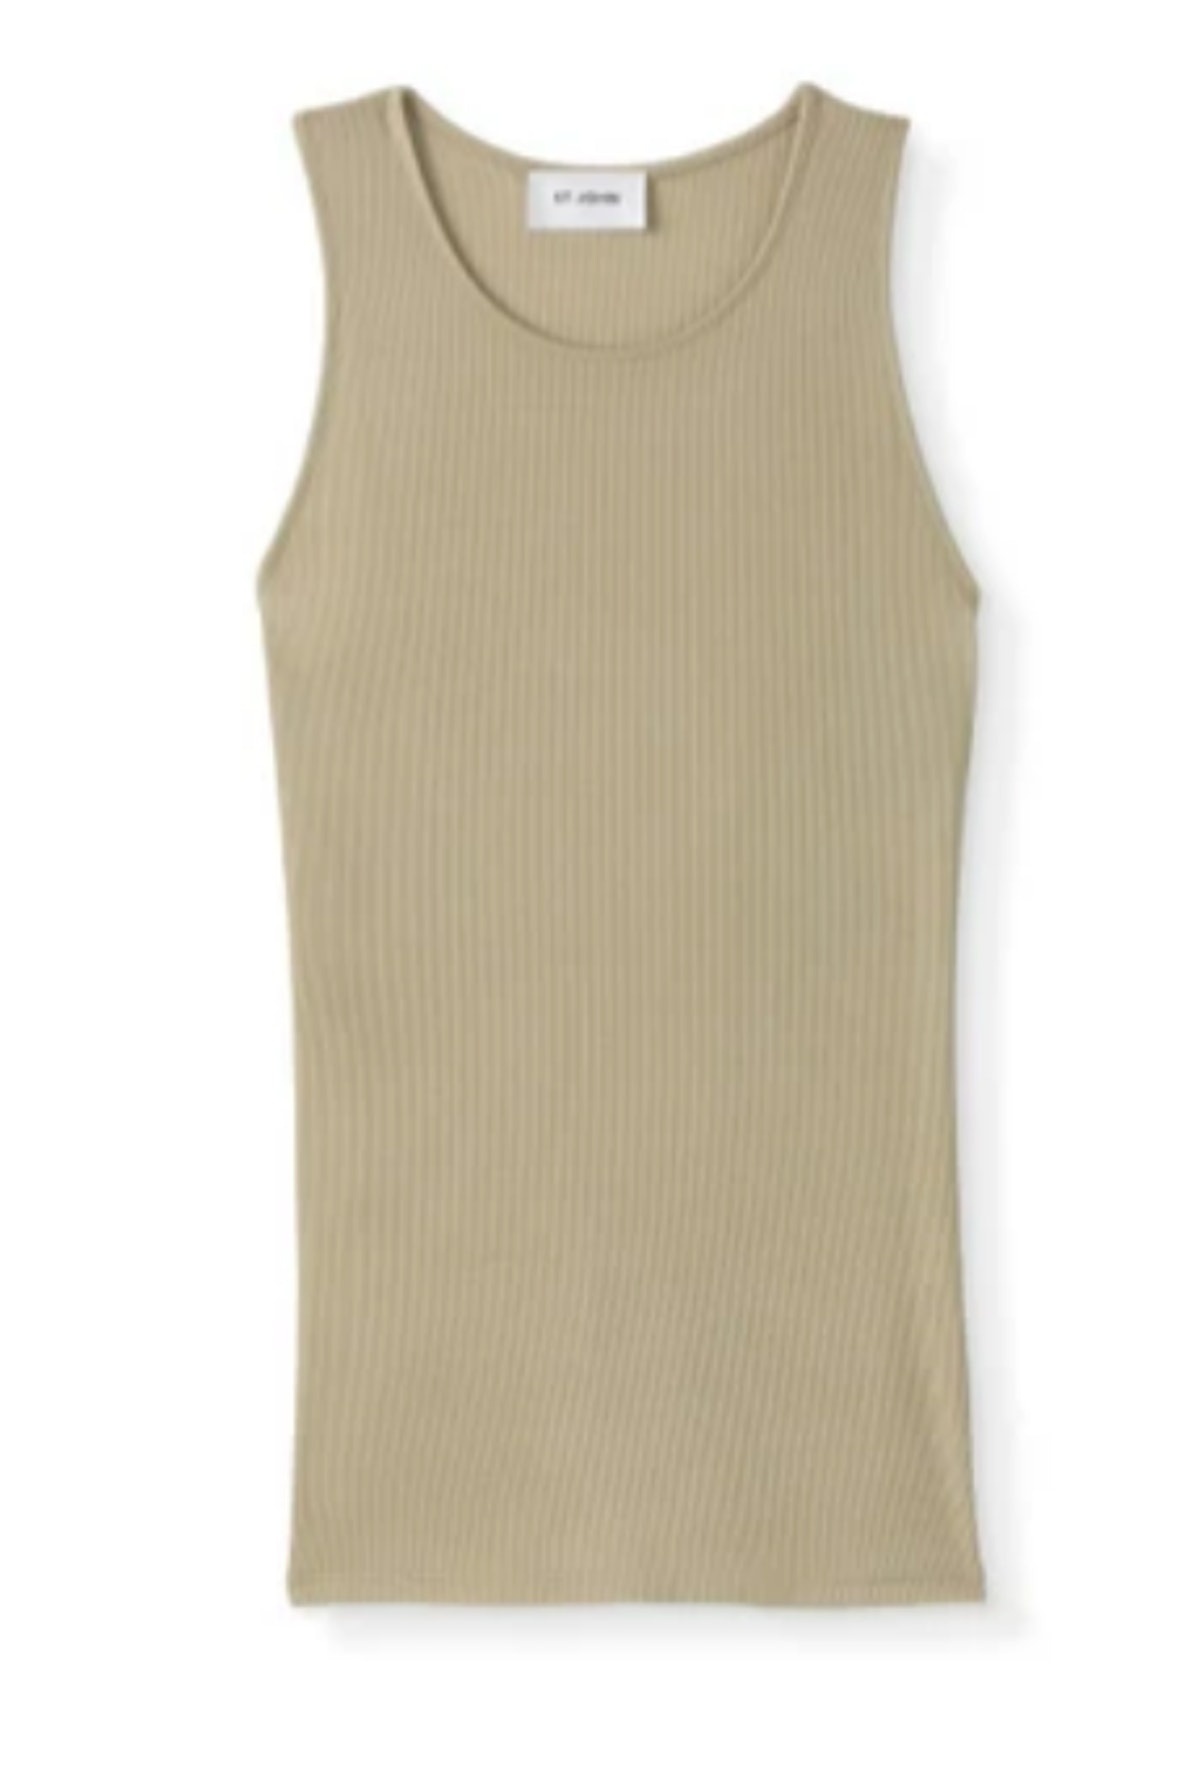 St. John's stretch rib knit tank top in the color fawn.